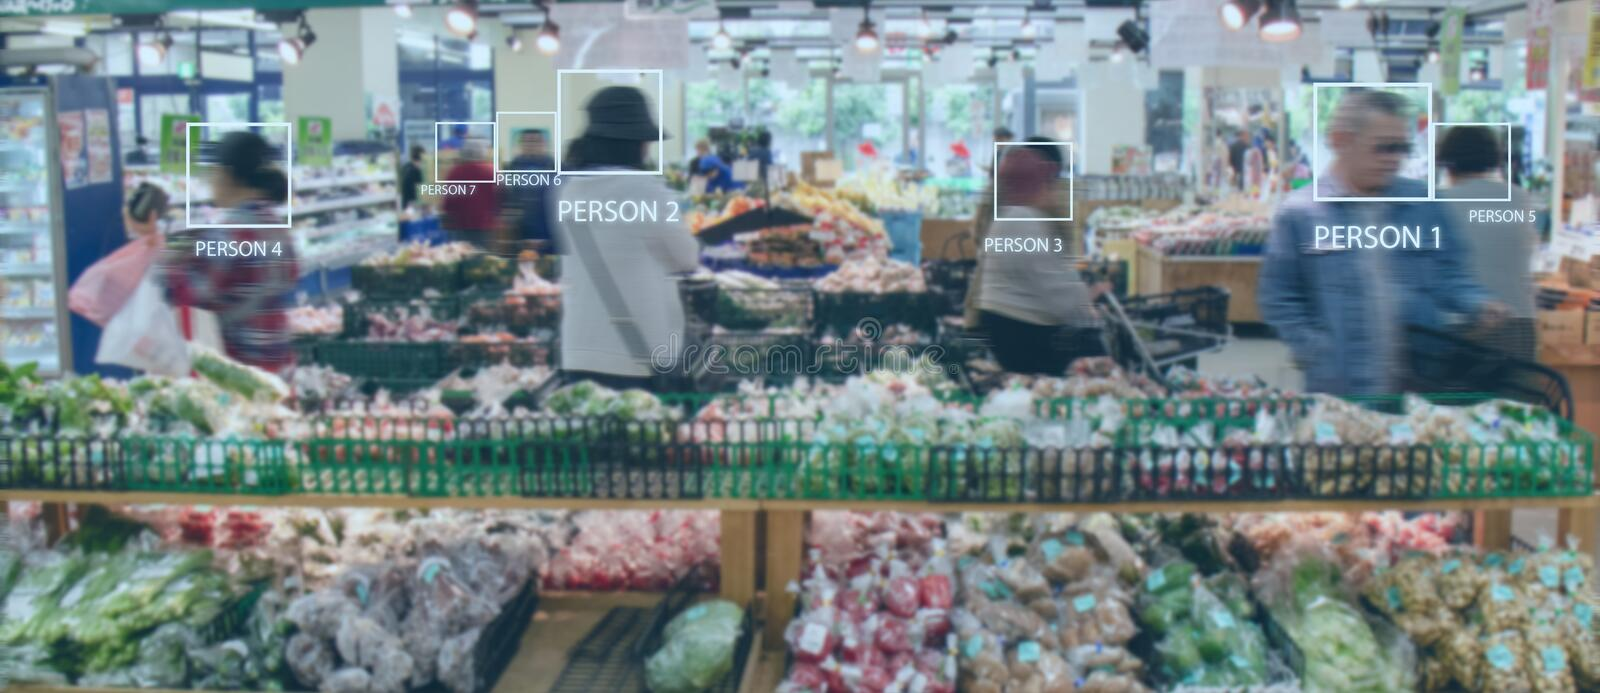 Iot smart retail use computer vision, sensor fusion and deep learning concept, automatically detects when products are taken from. Or returned to the shelves stock images